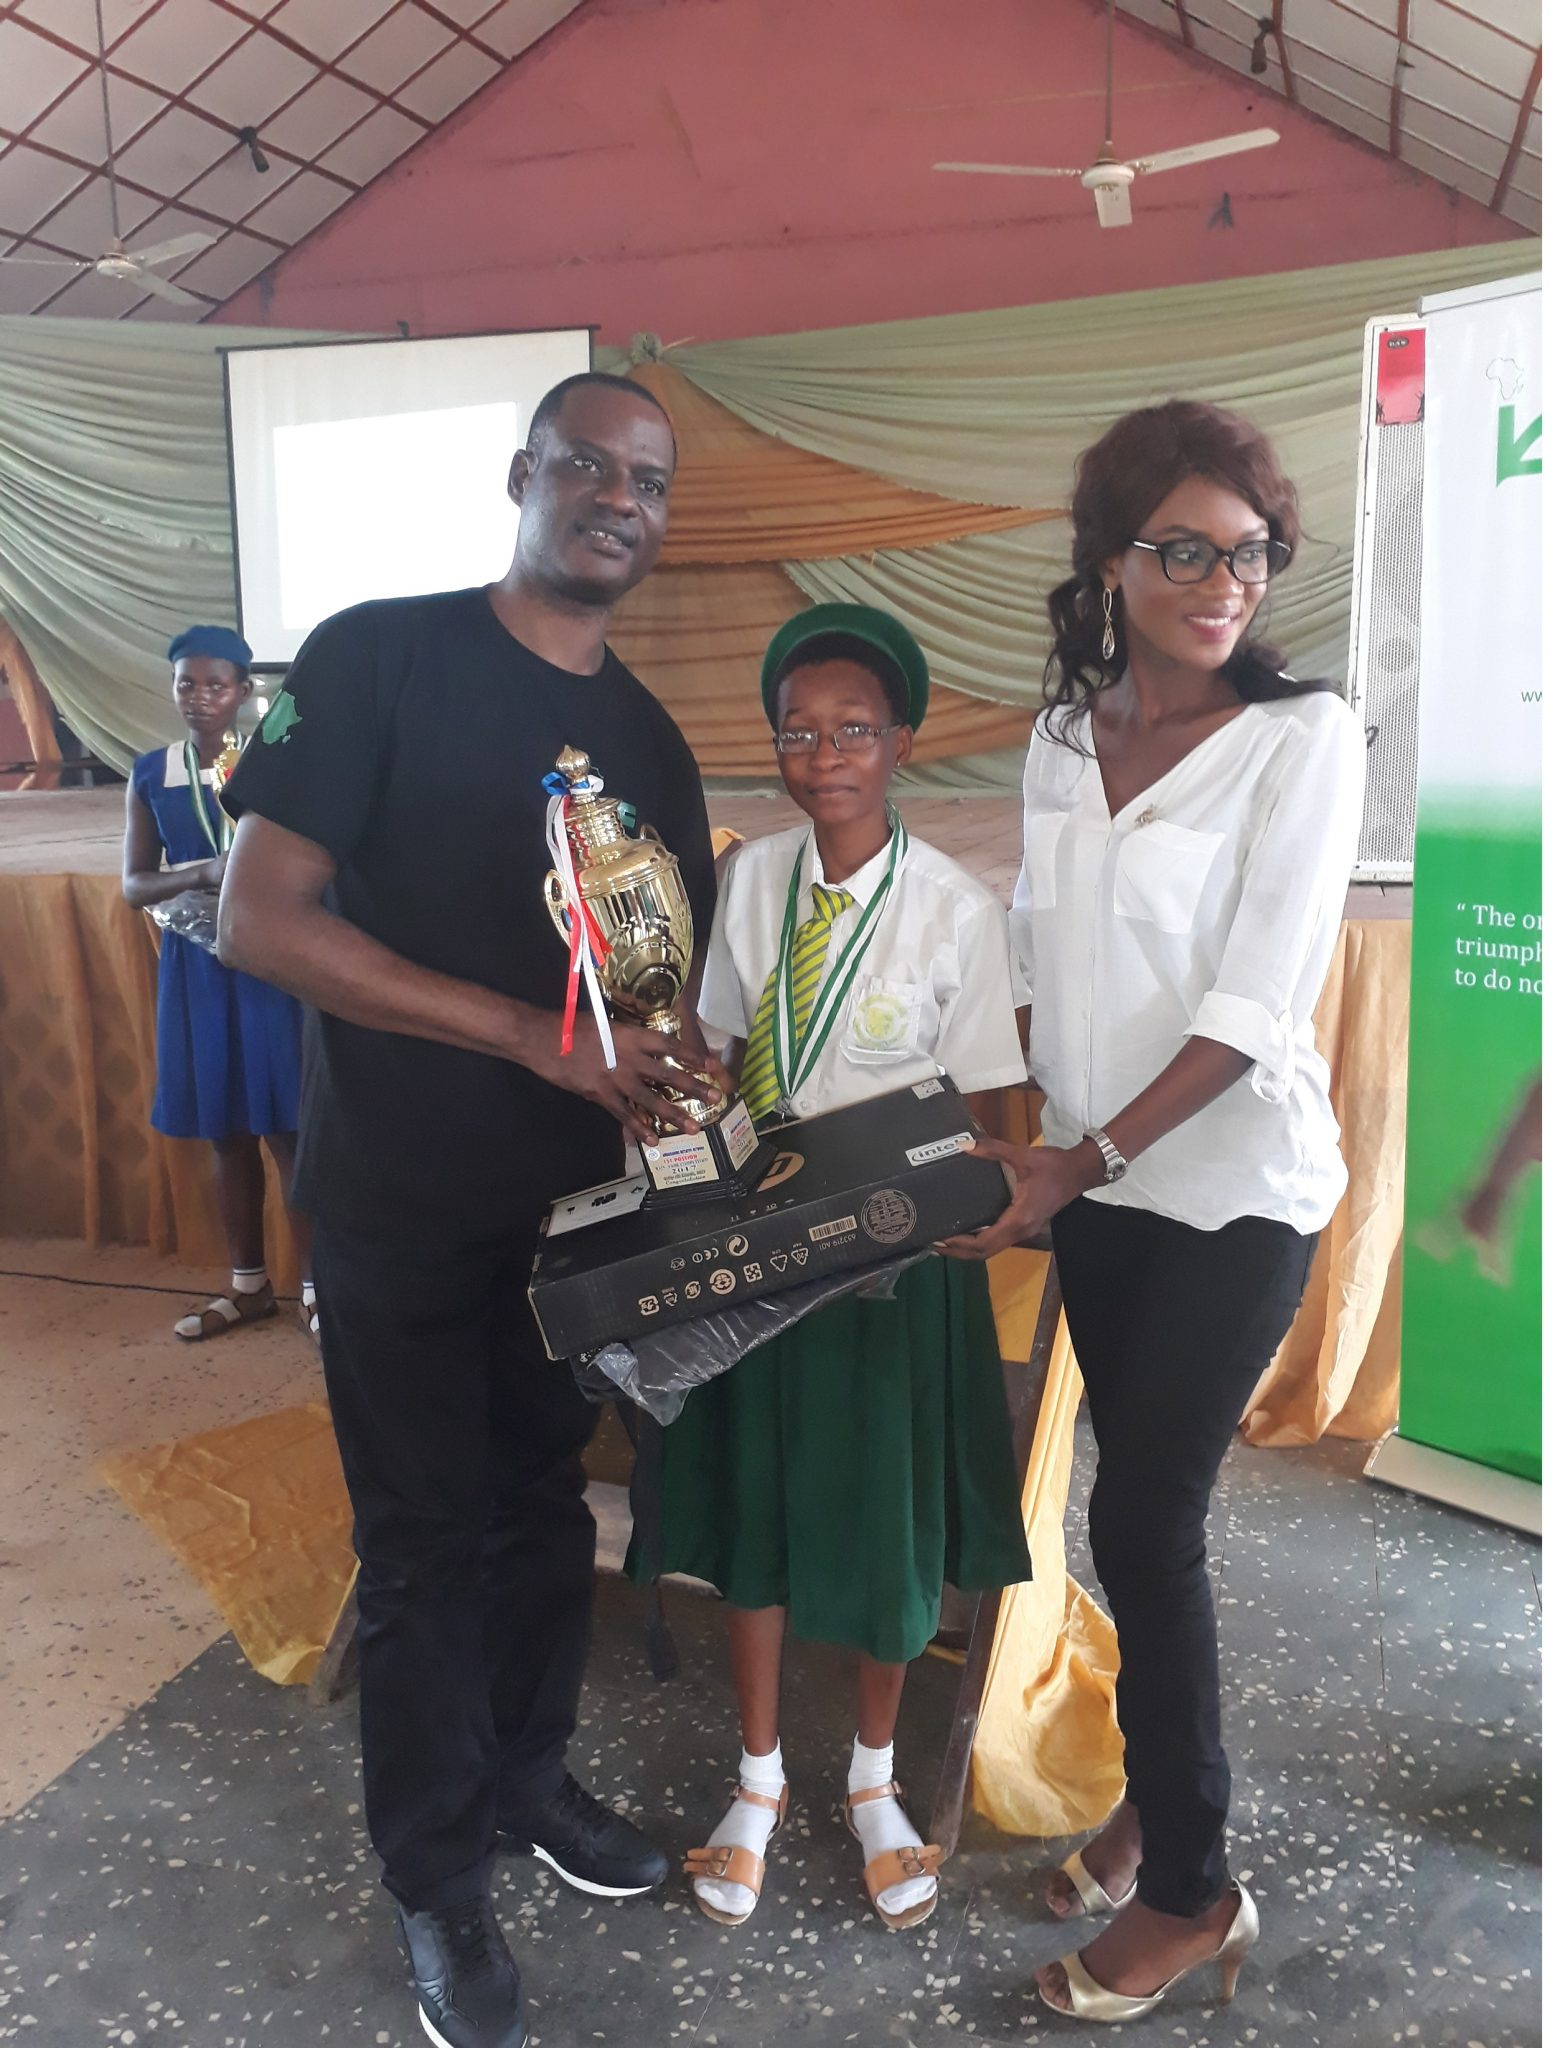 President of IAF in person of Taiwo Oyedele presenting award to the best student i the FAME competition